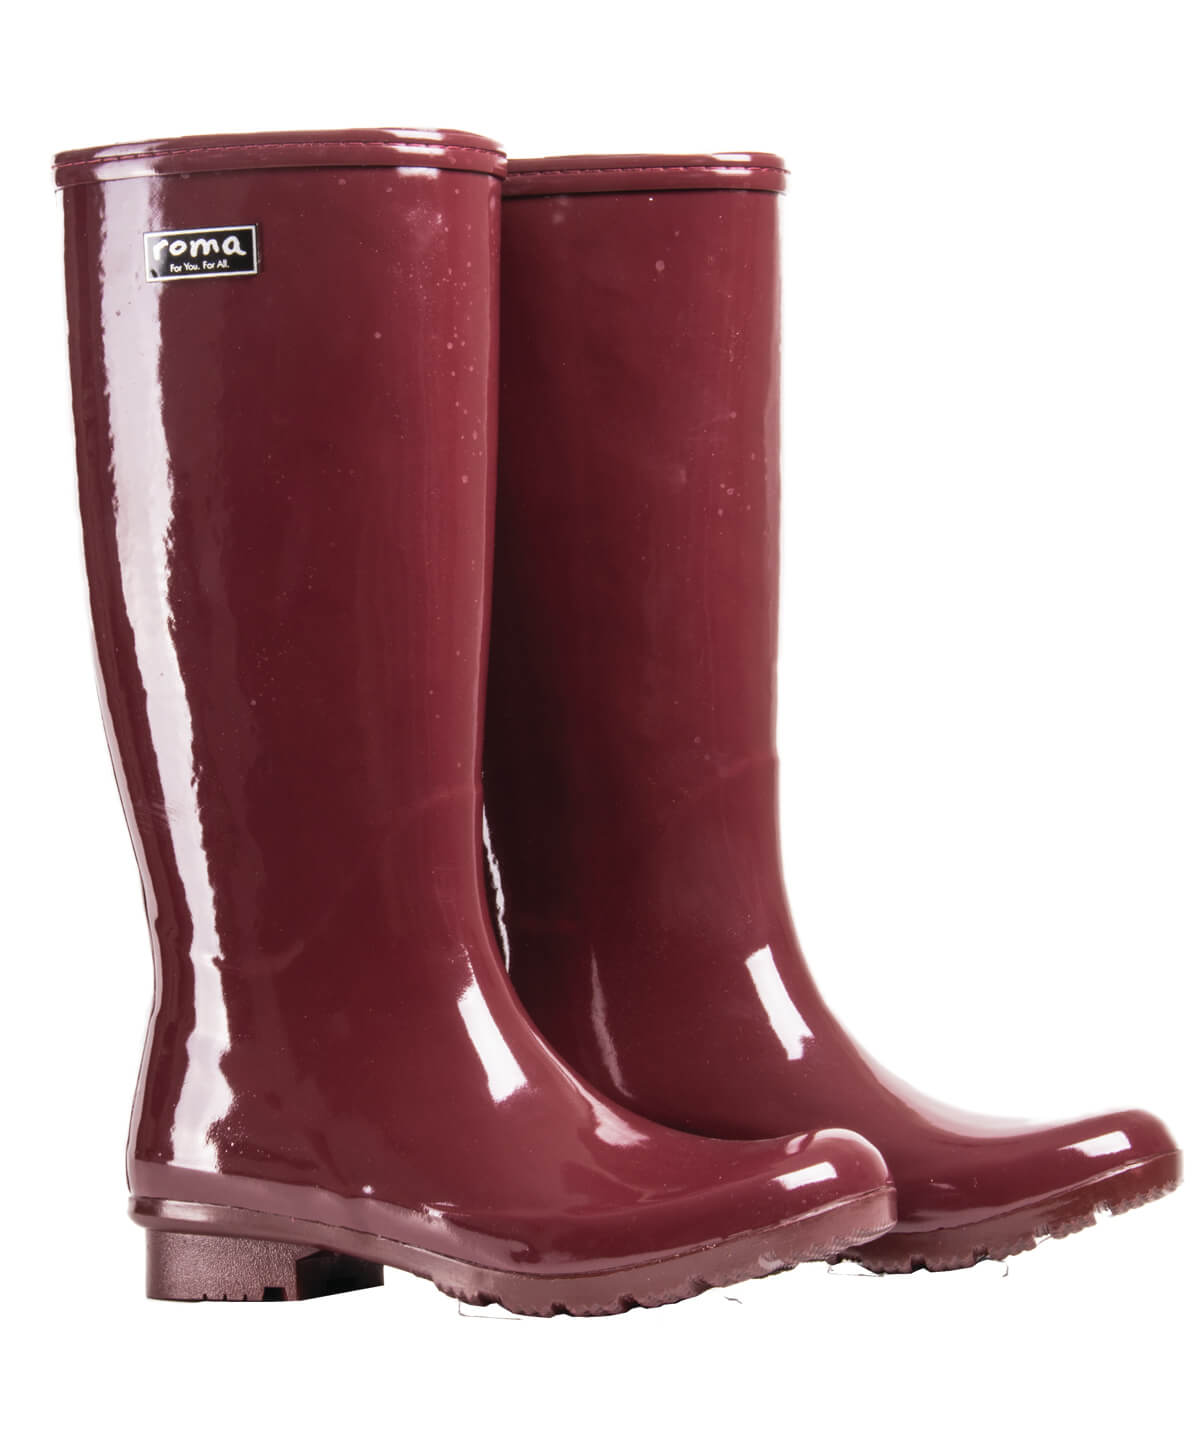 74f49b123 These comfy maroon rain boots are the perfect solution to your rainy day  woes! Lined with a quick drying cotton lining